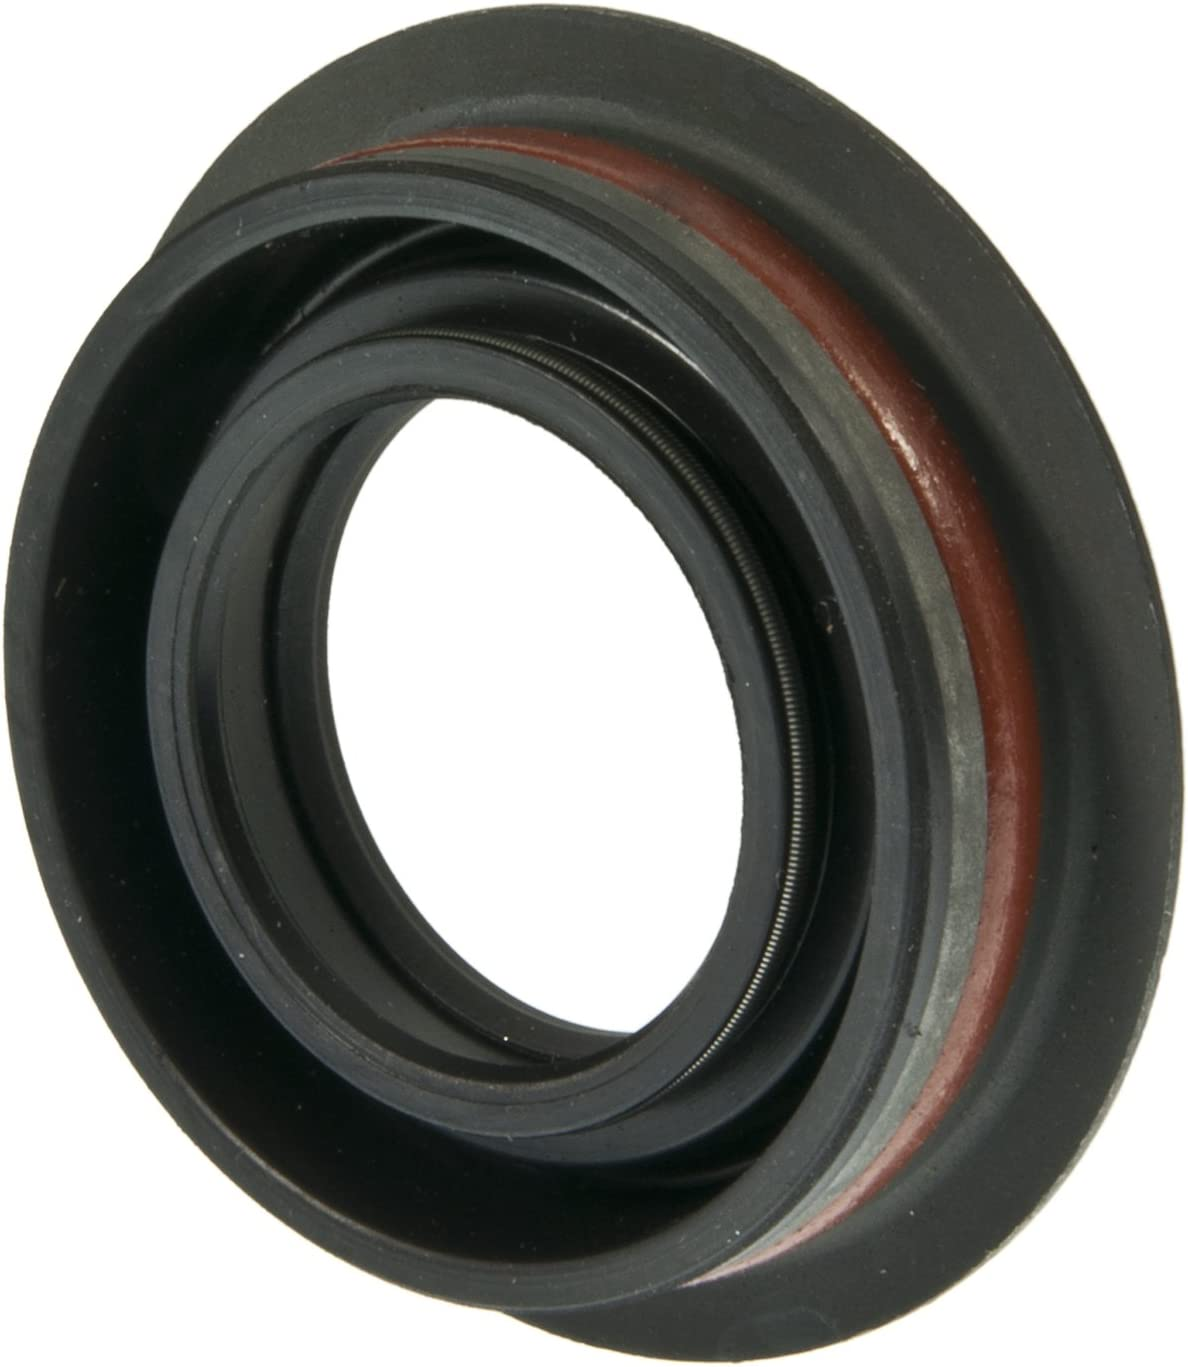 National 710502 Axle Shaft Output Max 87% OFF Deluxe Seal